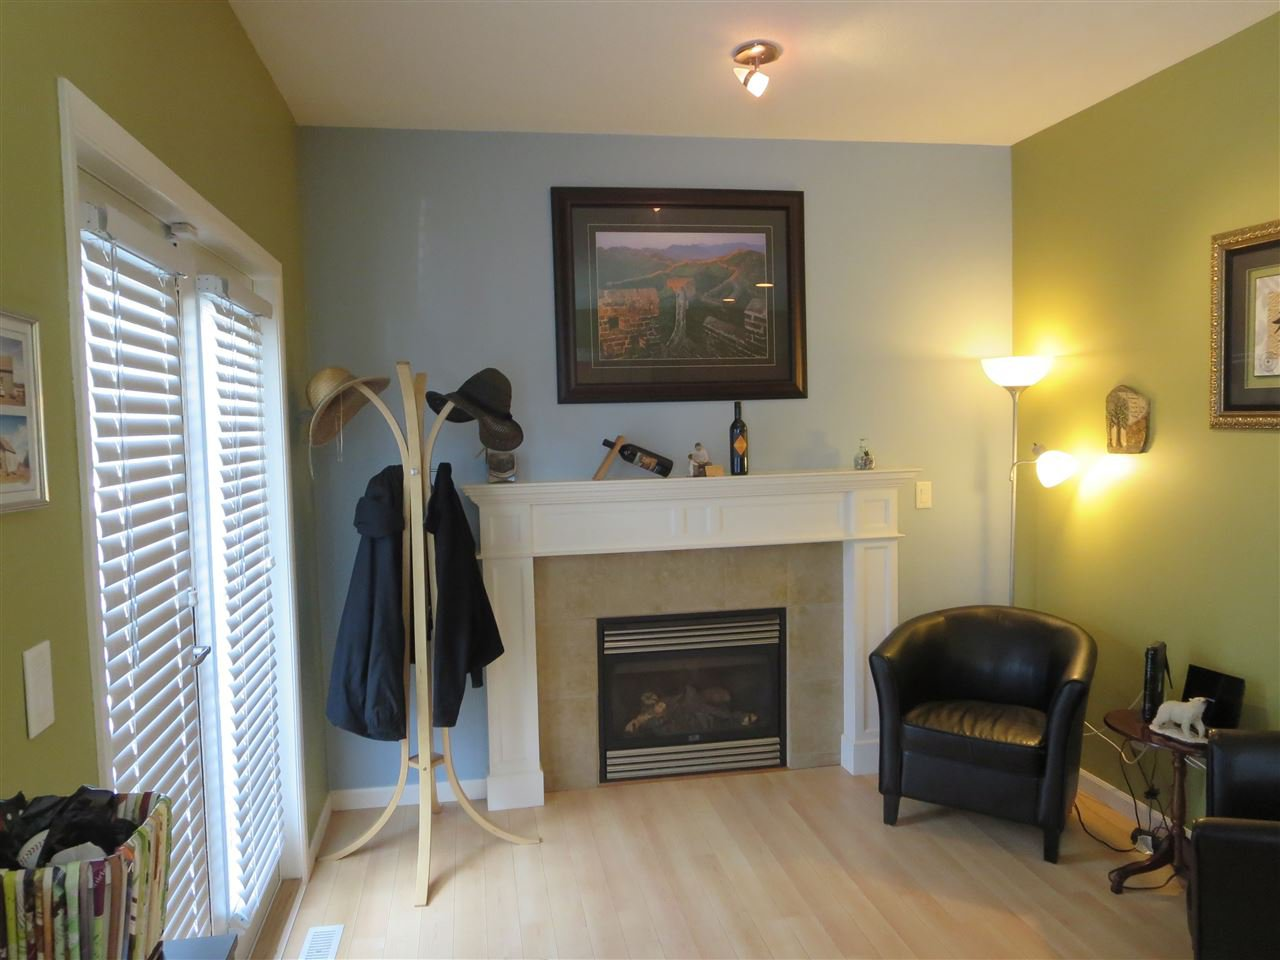 Photo 13: Photos: 63 3127 SKEENA Street in Port Coquitlam: Riverwood Townhouse for sale : MLS®# R2090693